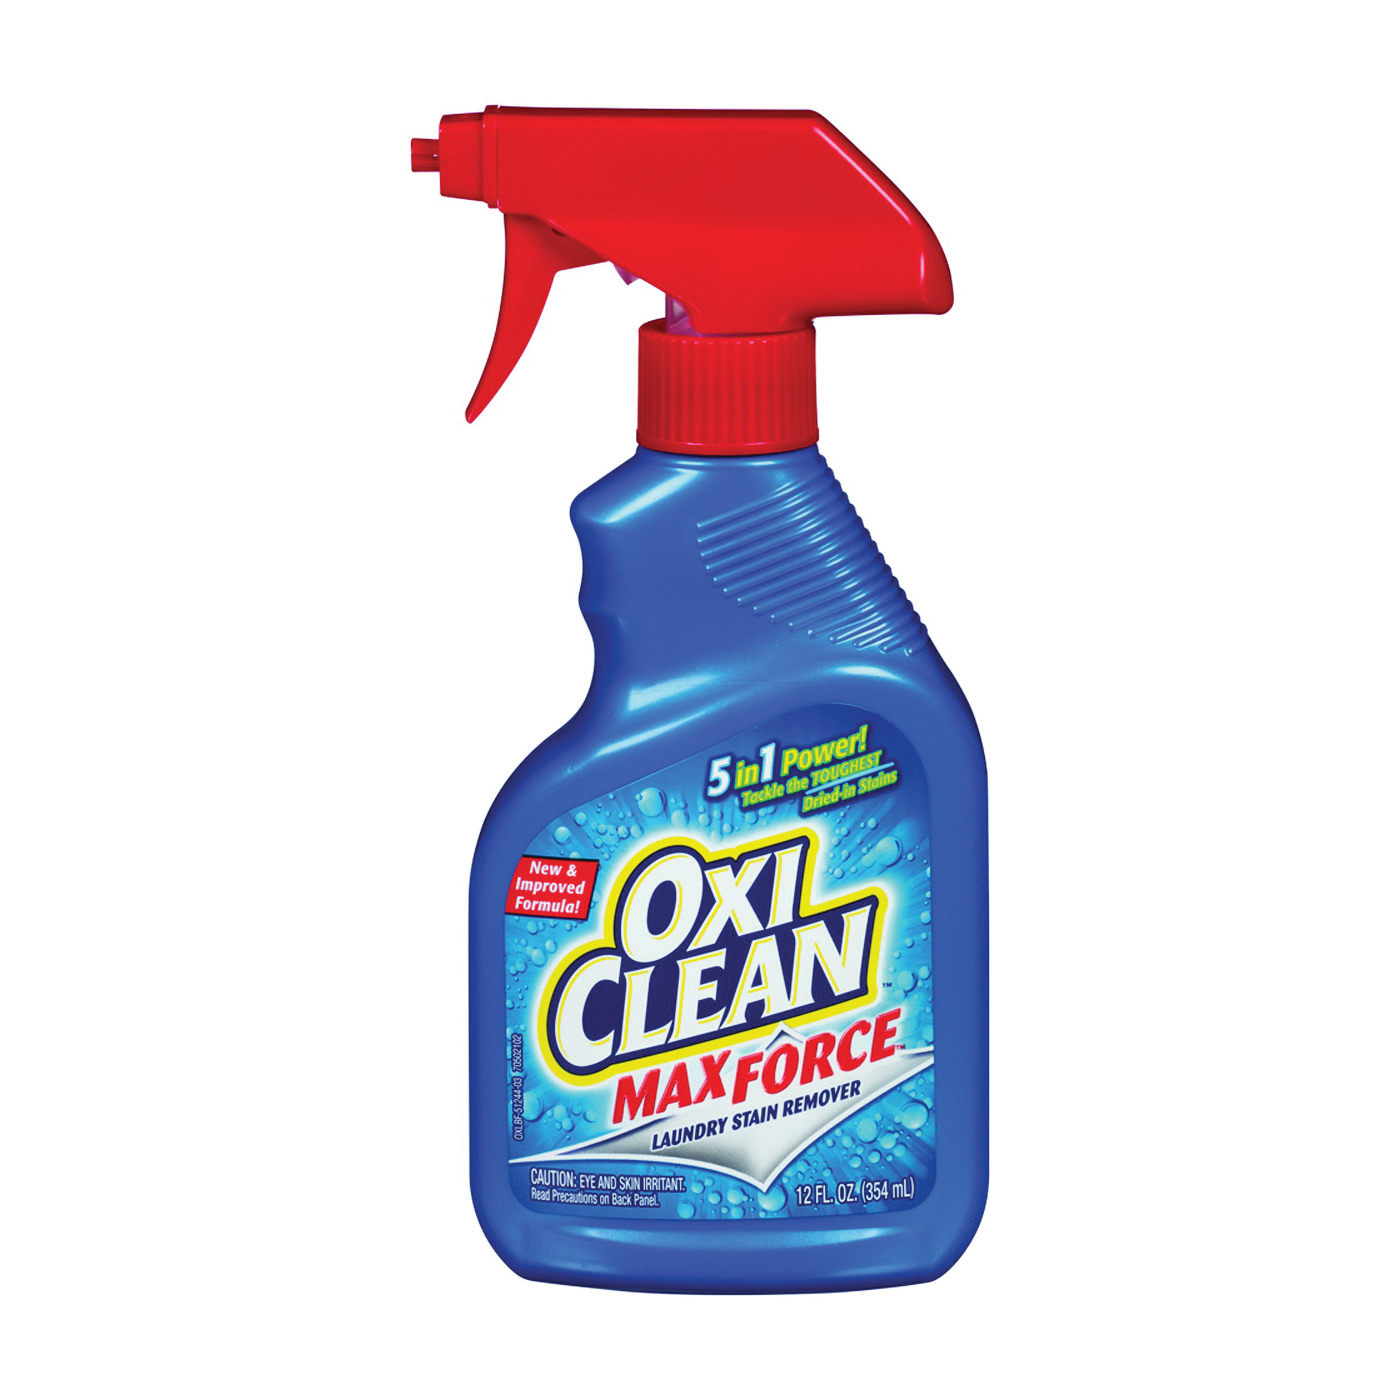 Picture of OXICLEAN Max Force 51244 Stain Remover, 12 oz Package, Bottle, Liquid, Opaque White